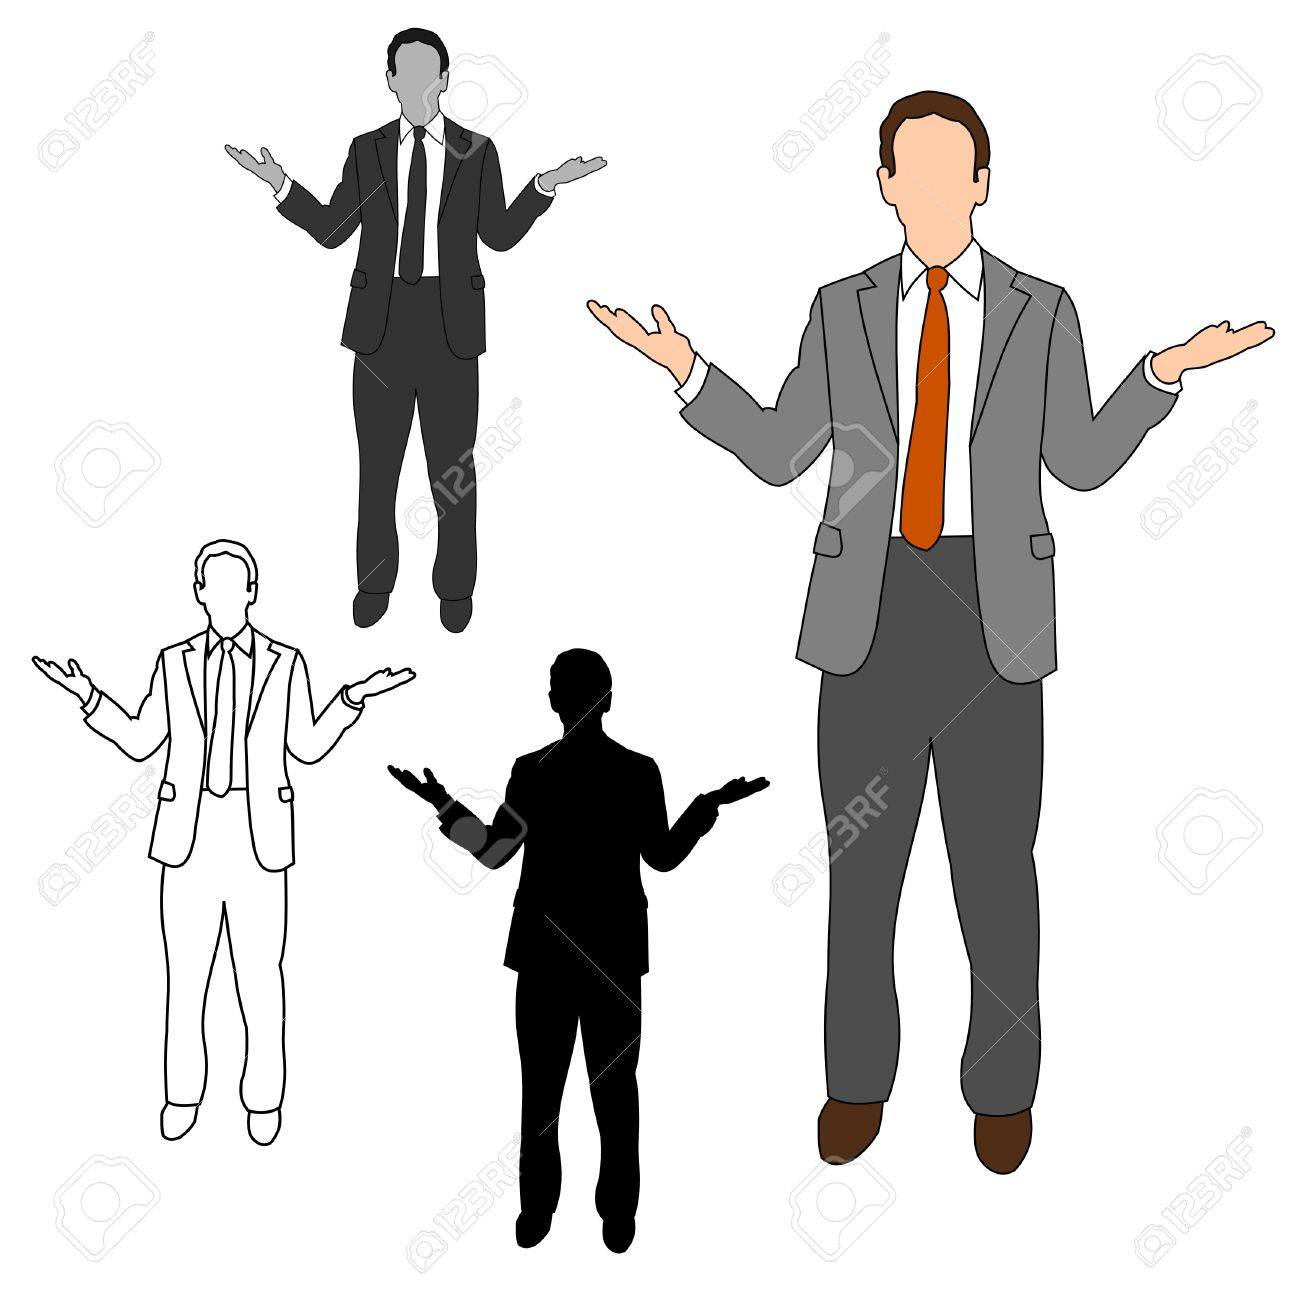 Business Man Style Set 08 Stock Vector - 9721393